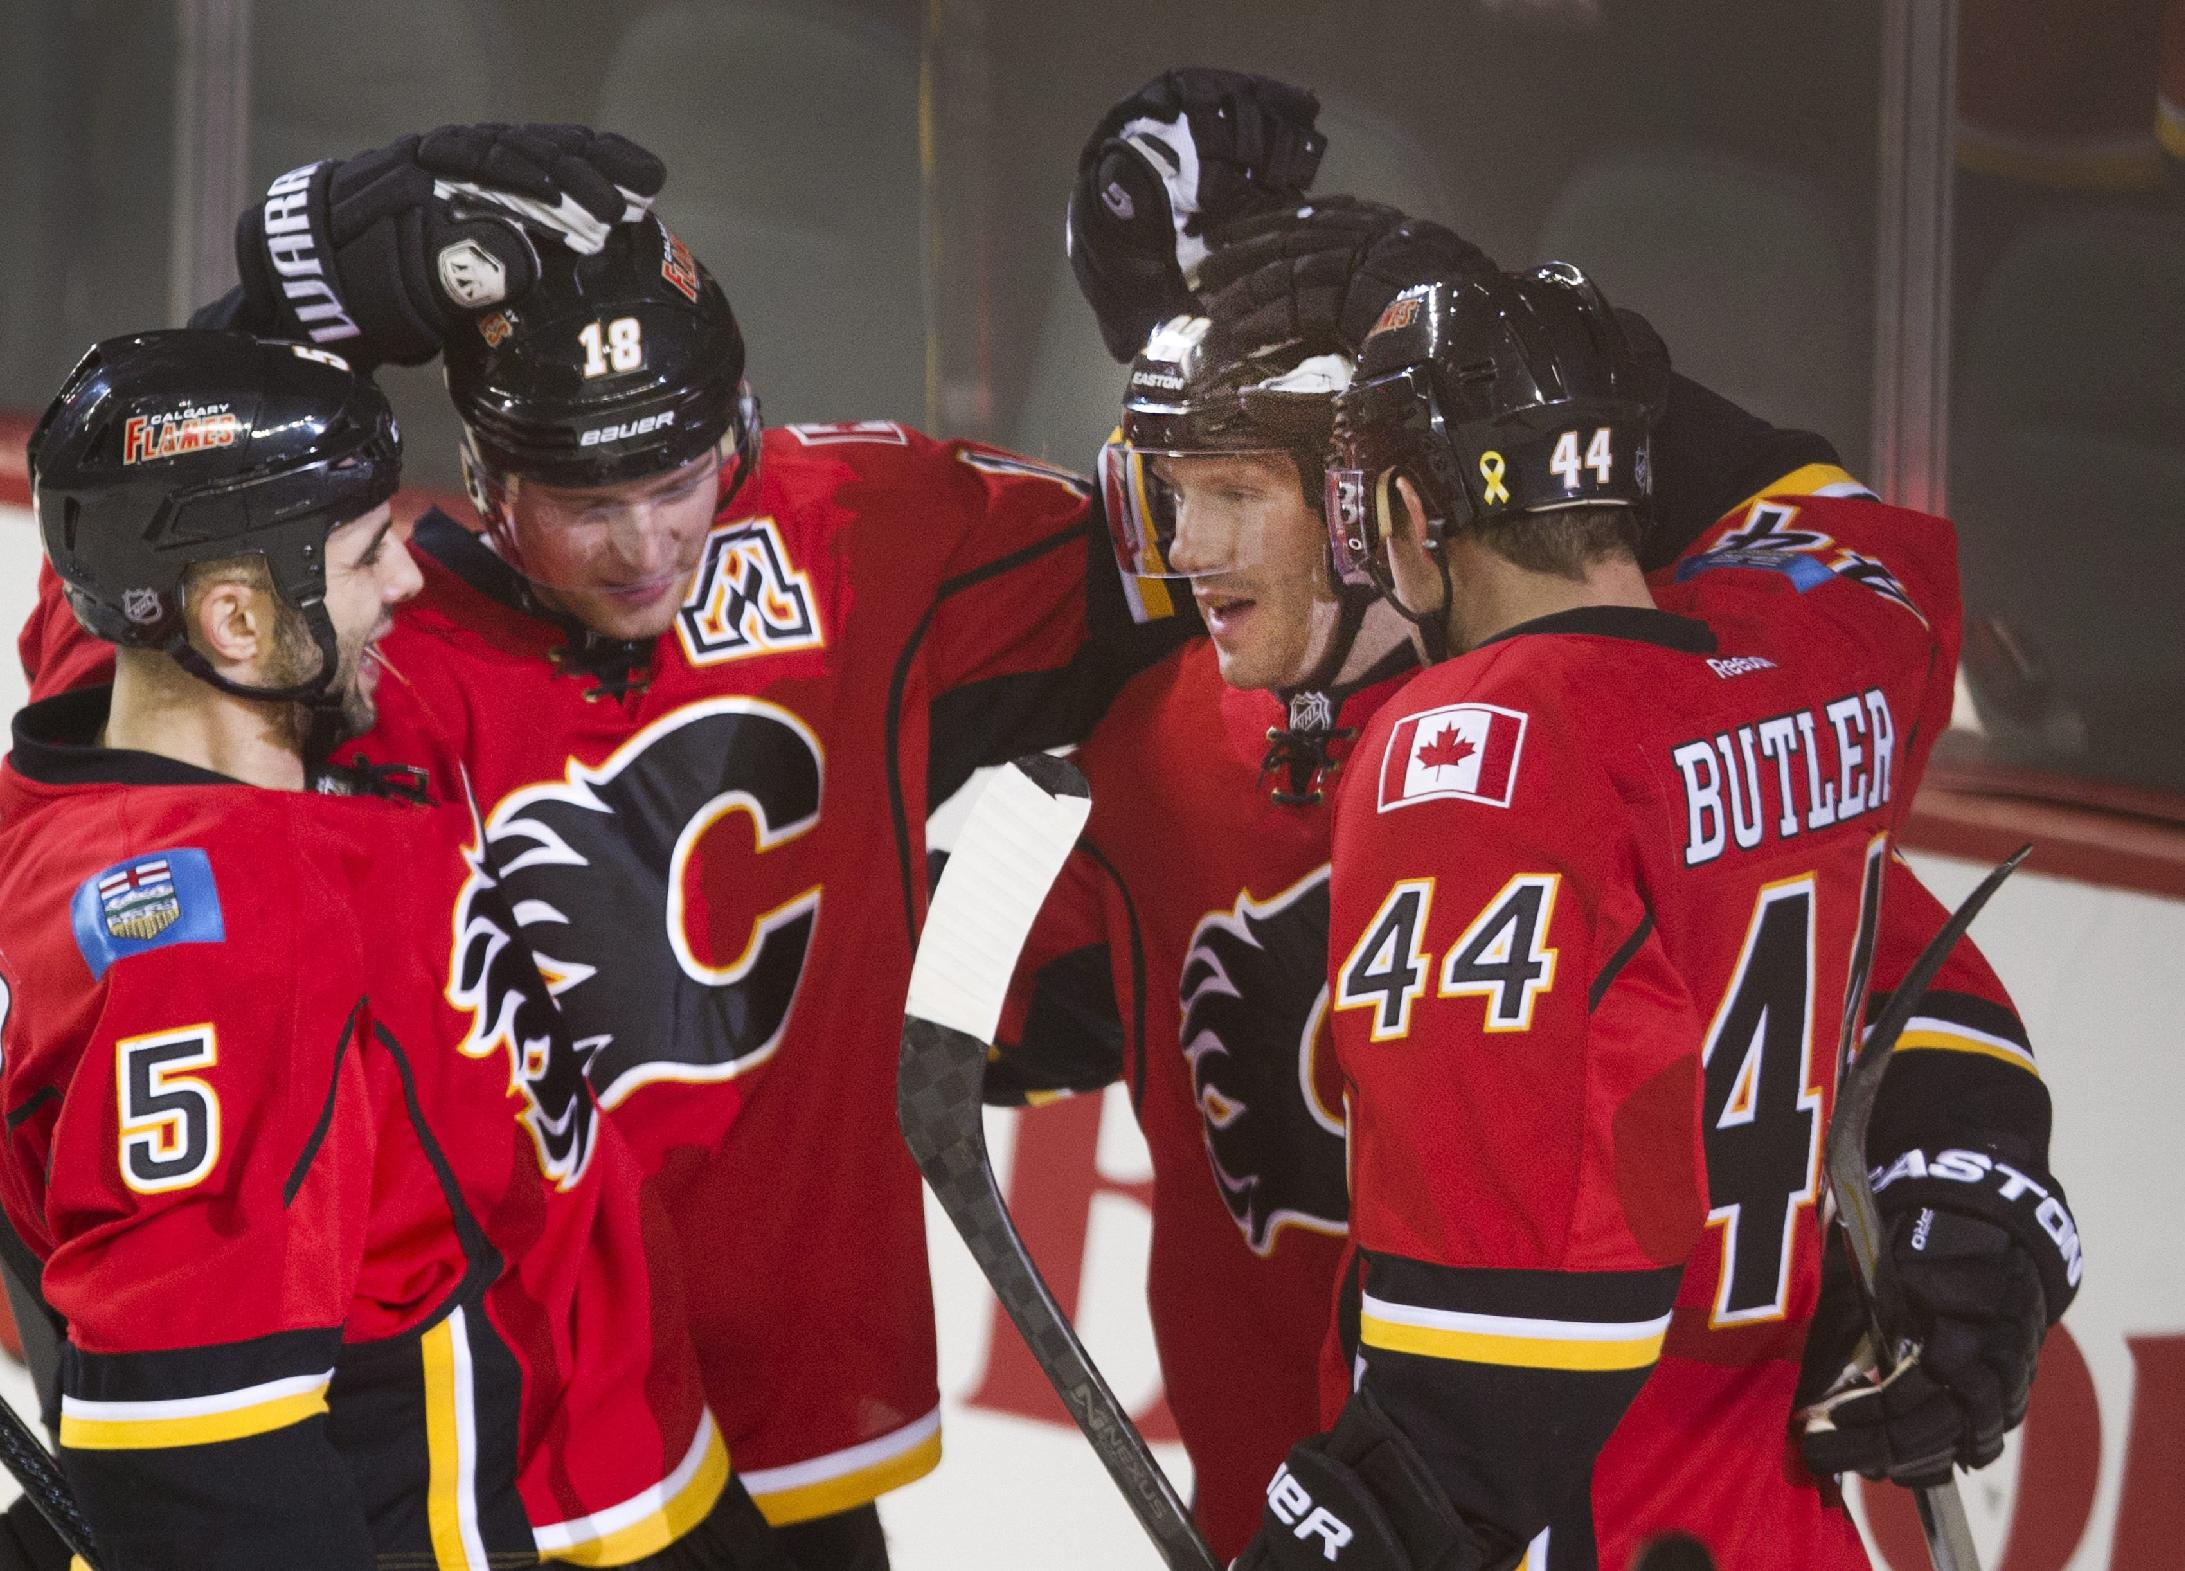 Calgary Flames' Lee Stempniak, second from right, celebrates his short-handed goal against the Phoenix Coyotes with Mark Giordano, left, Matt Stajan, second from left, and Chris Butler during third period NHL action Wednesday, Dec. 4, 2013 in Calgary, Alberta